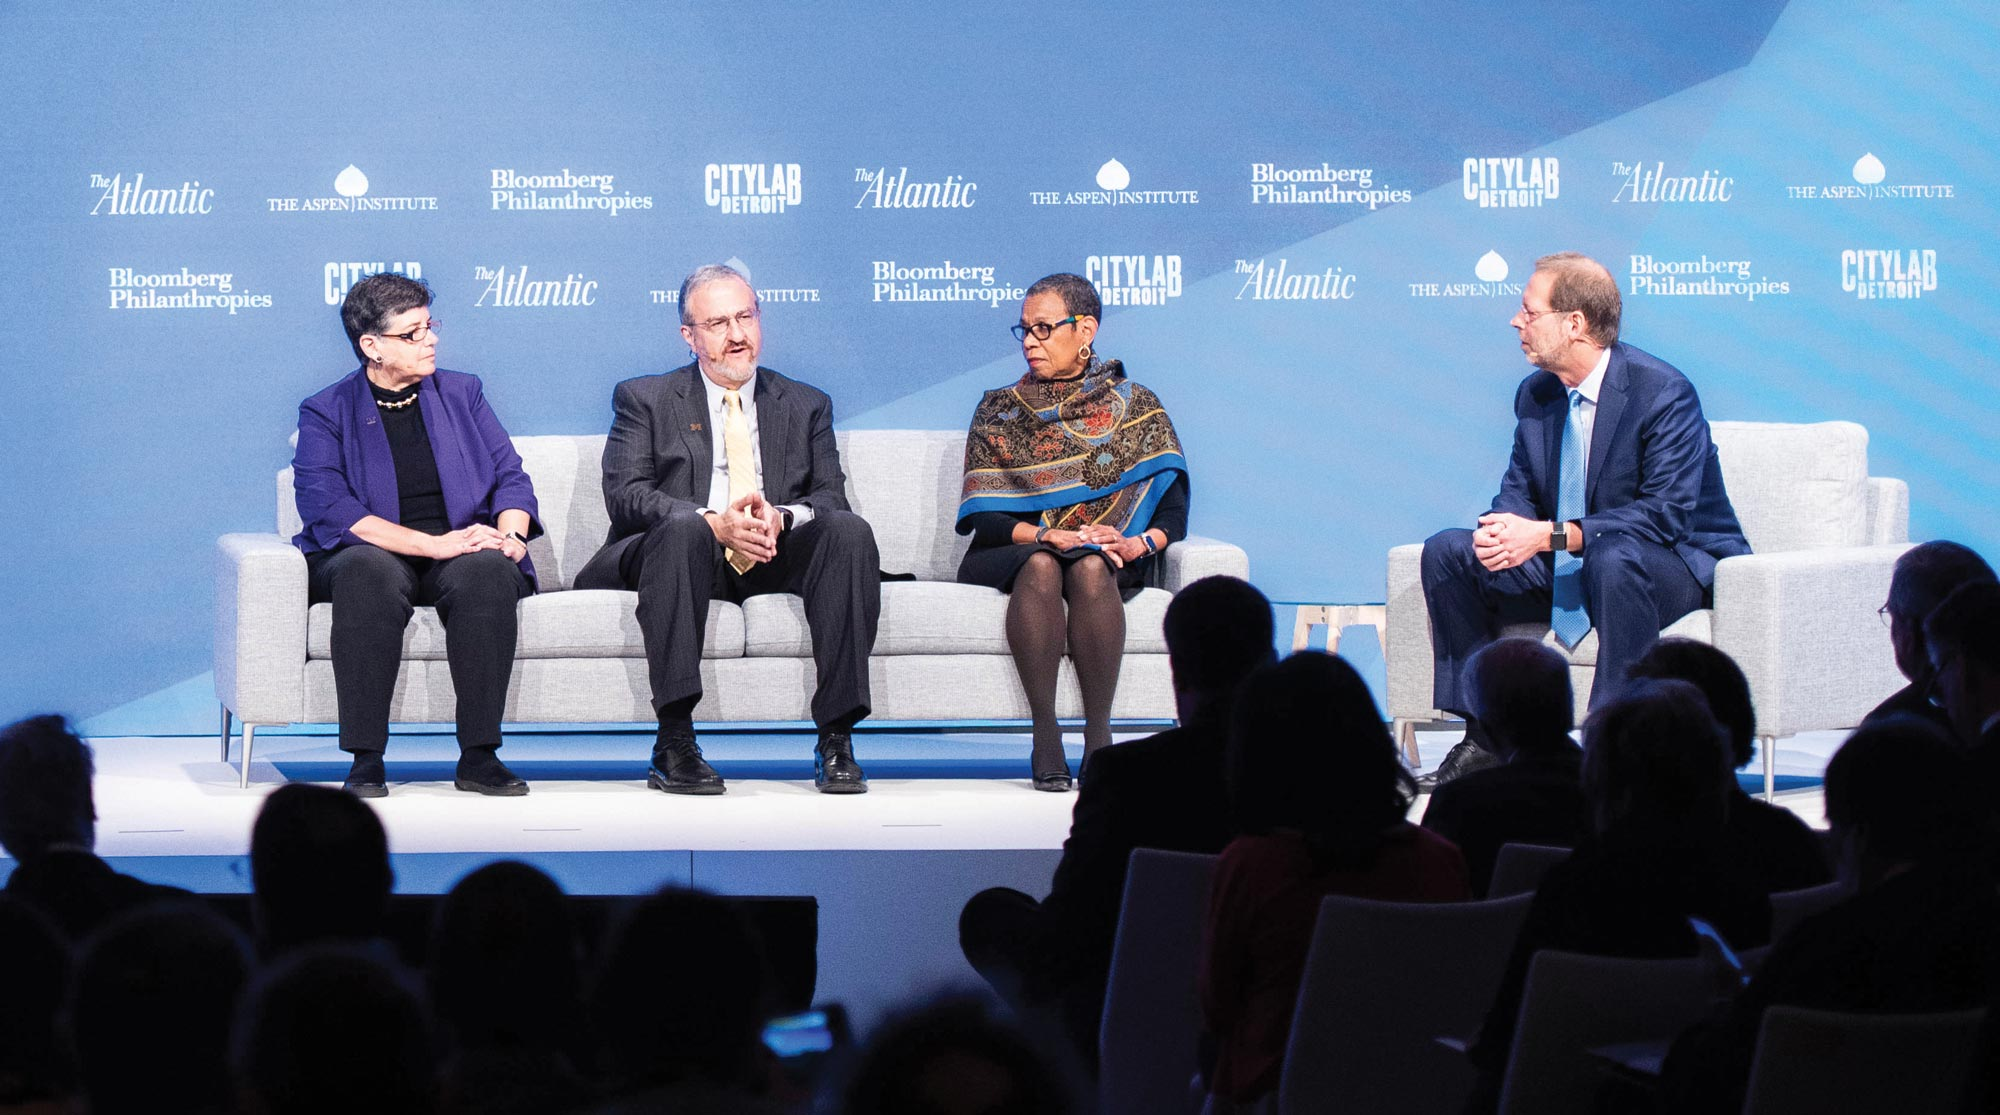 (Right to left) Daniel Porterfield, President and CEO of the Aspen Institute, moderates a panel discussion on college access with Spelman College President Mary Schmidt Campbell, University of Michigan President Mark Schlissel, and University of Washington President Ana Mari Cauce.